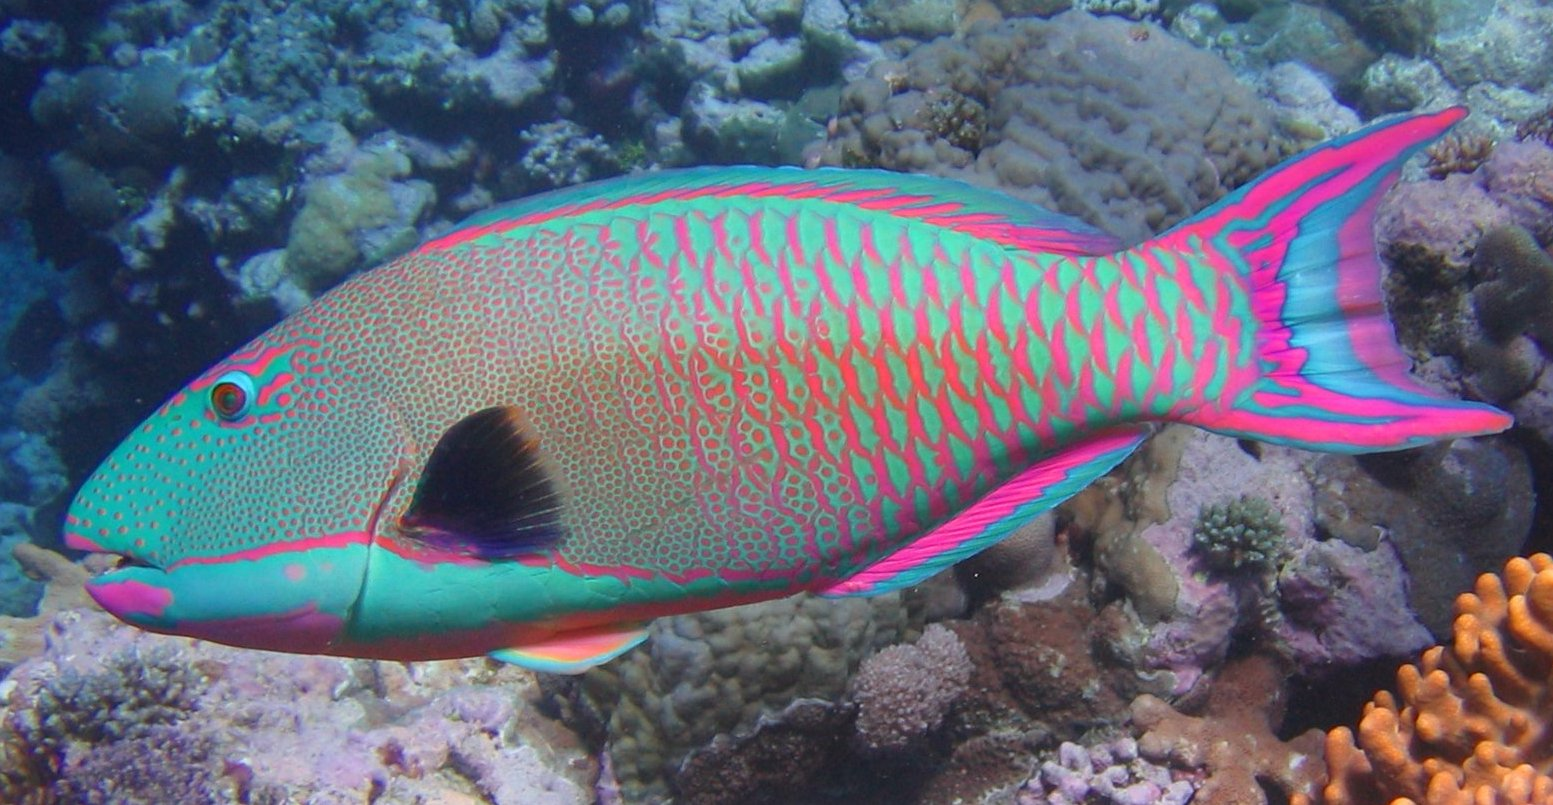 https://i0.wp.com/www.aquariaveldhuis.nl/domeinen/aquariaveldhuis/www/products_pictures/thumbnail/Bicolor_parrotfish[1].jpg